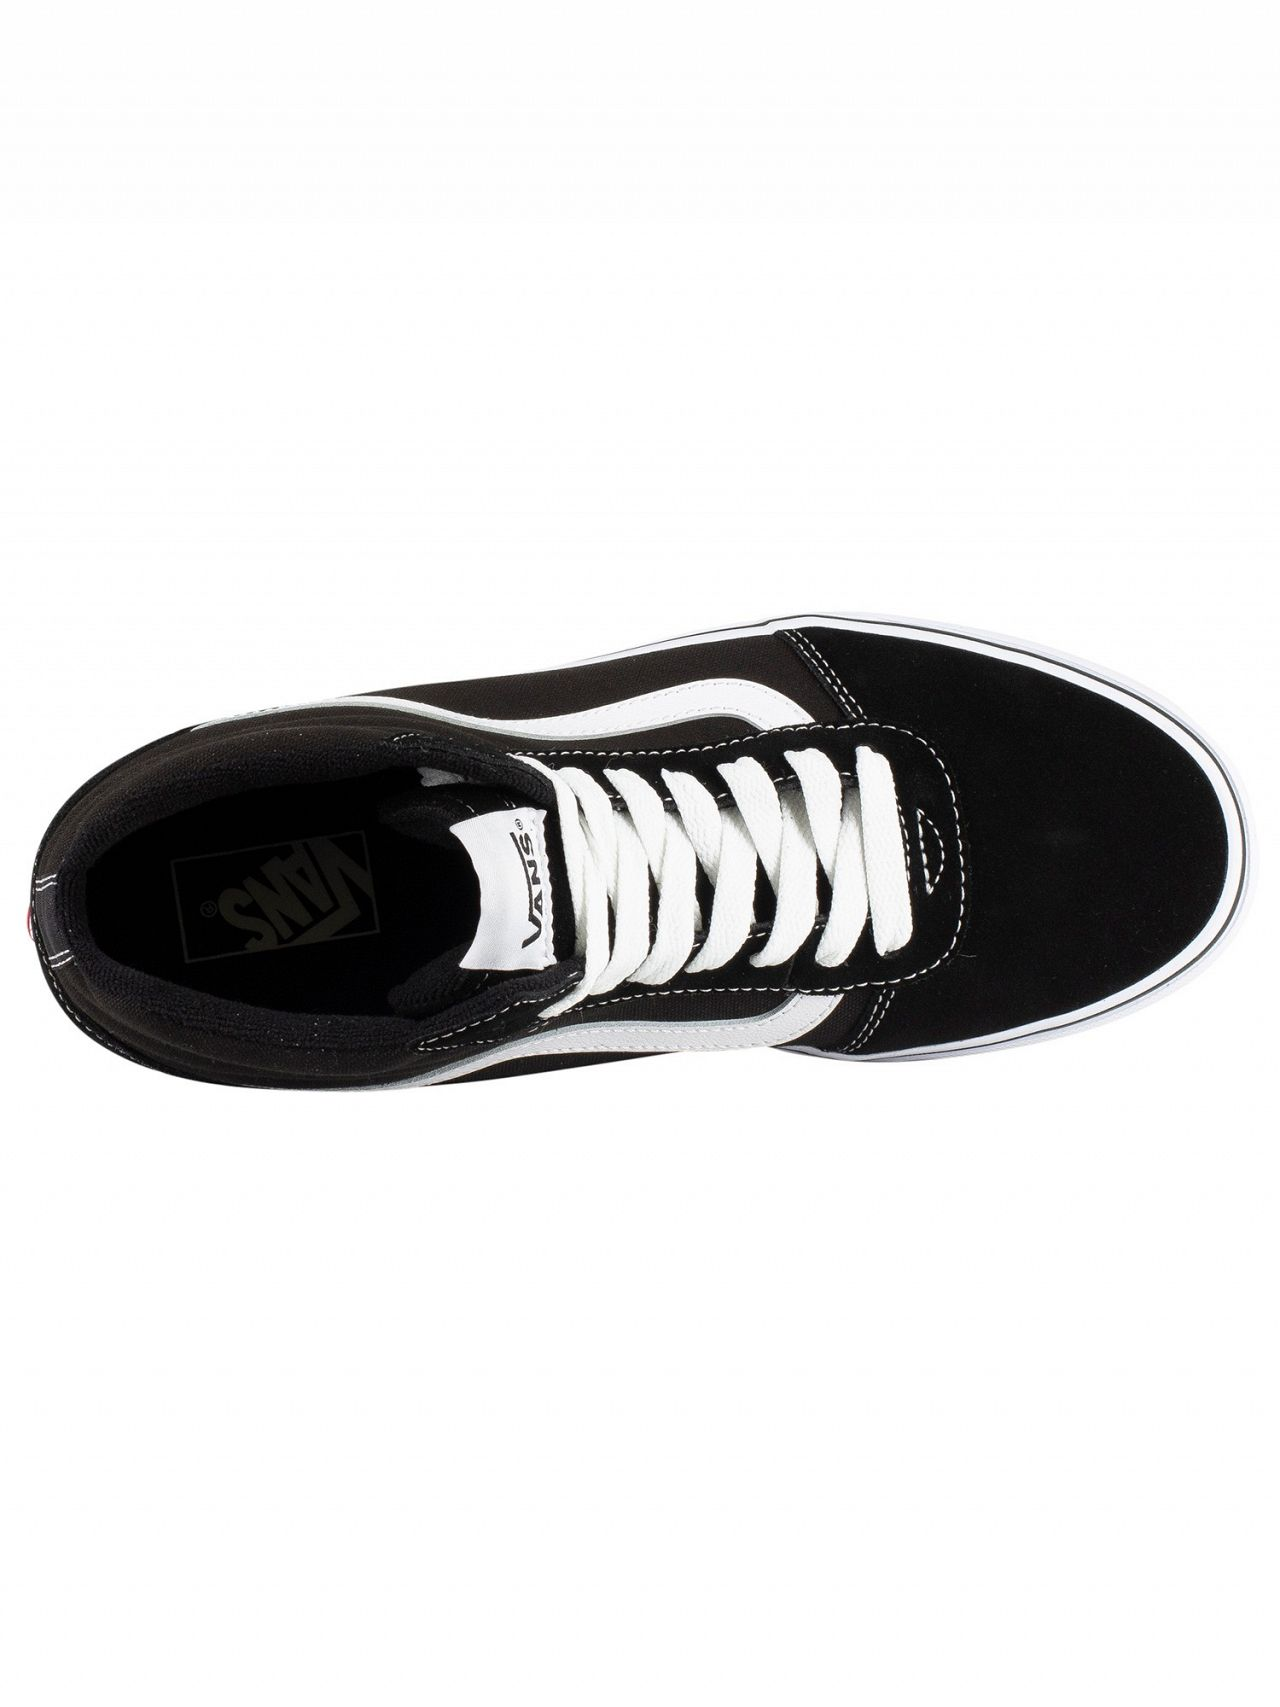 6aa4b110720 Vans Black White Ward Hi Suede Canvas Trainers